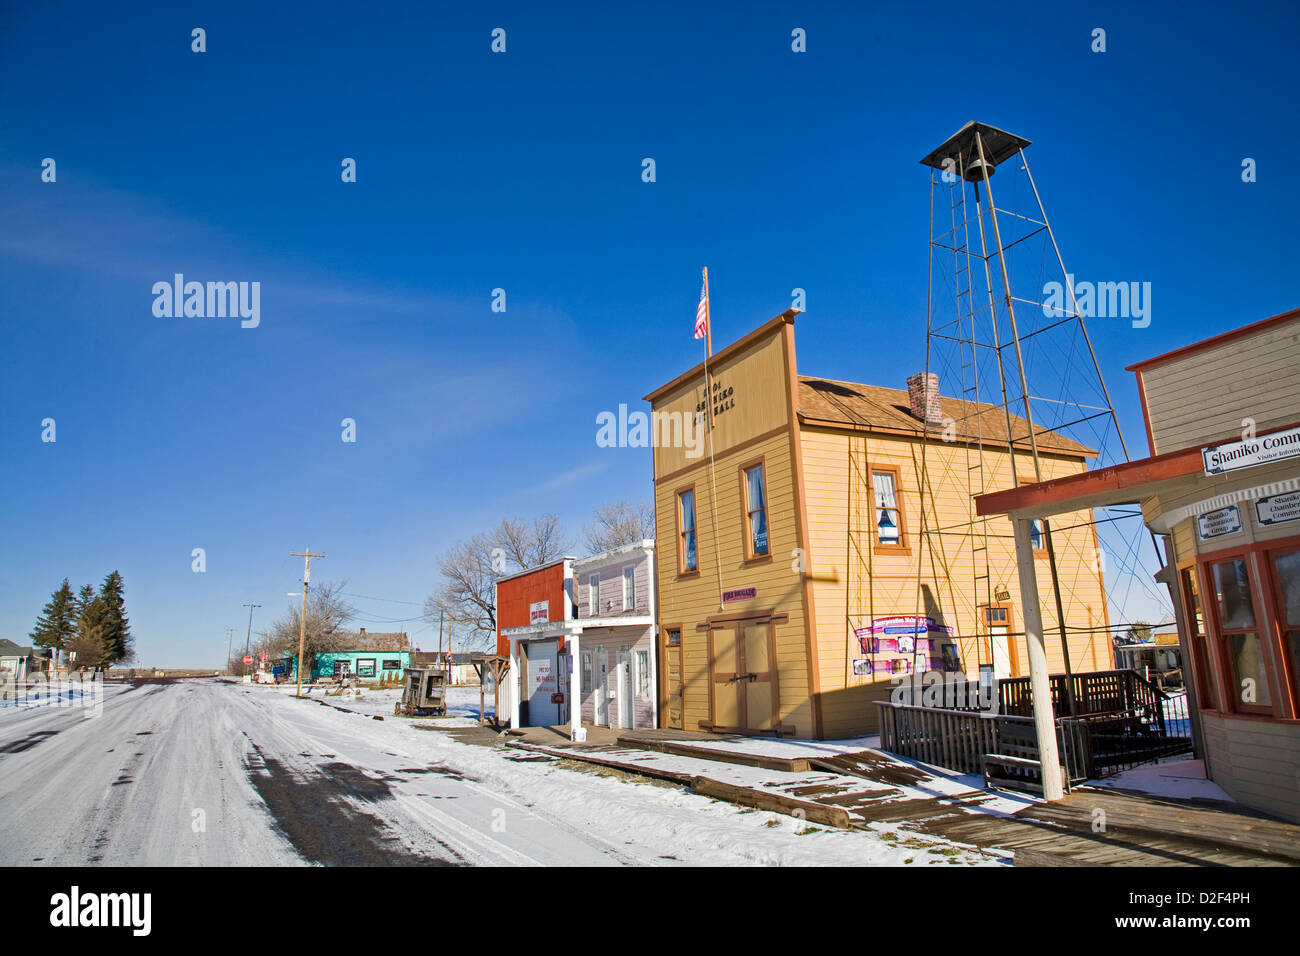 The main street in the ghost town of Shaniko, Oregon - Stock Image